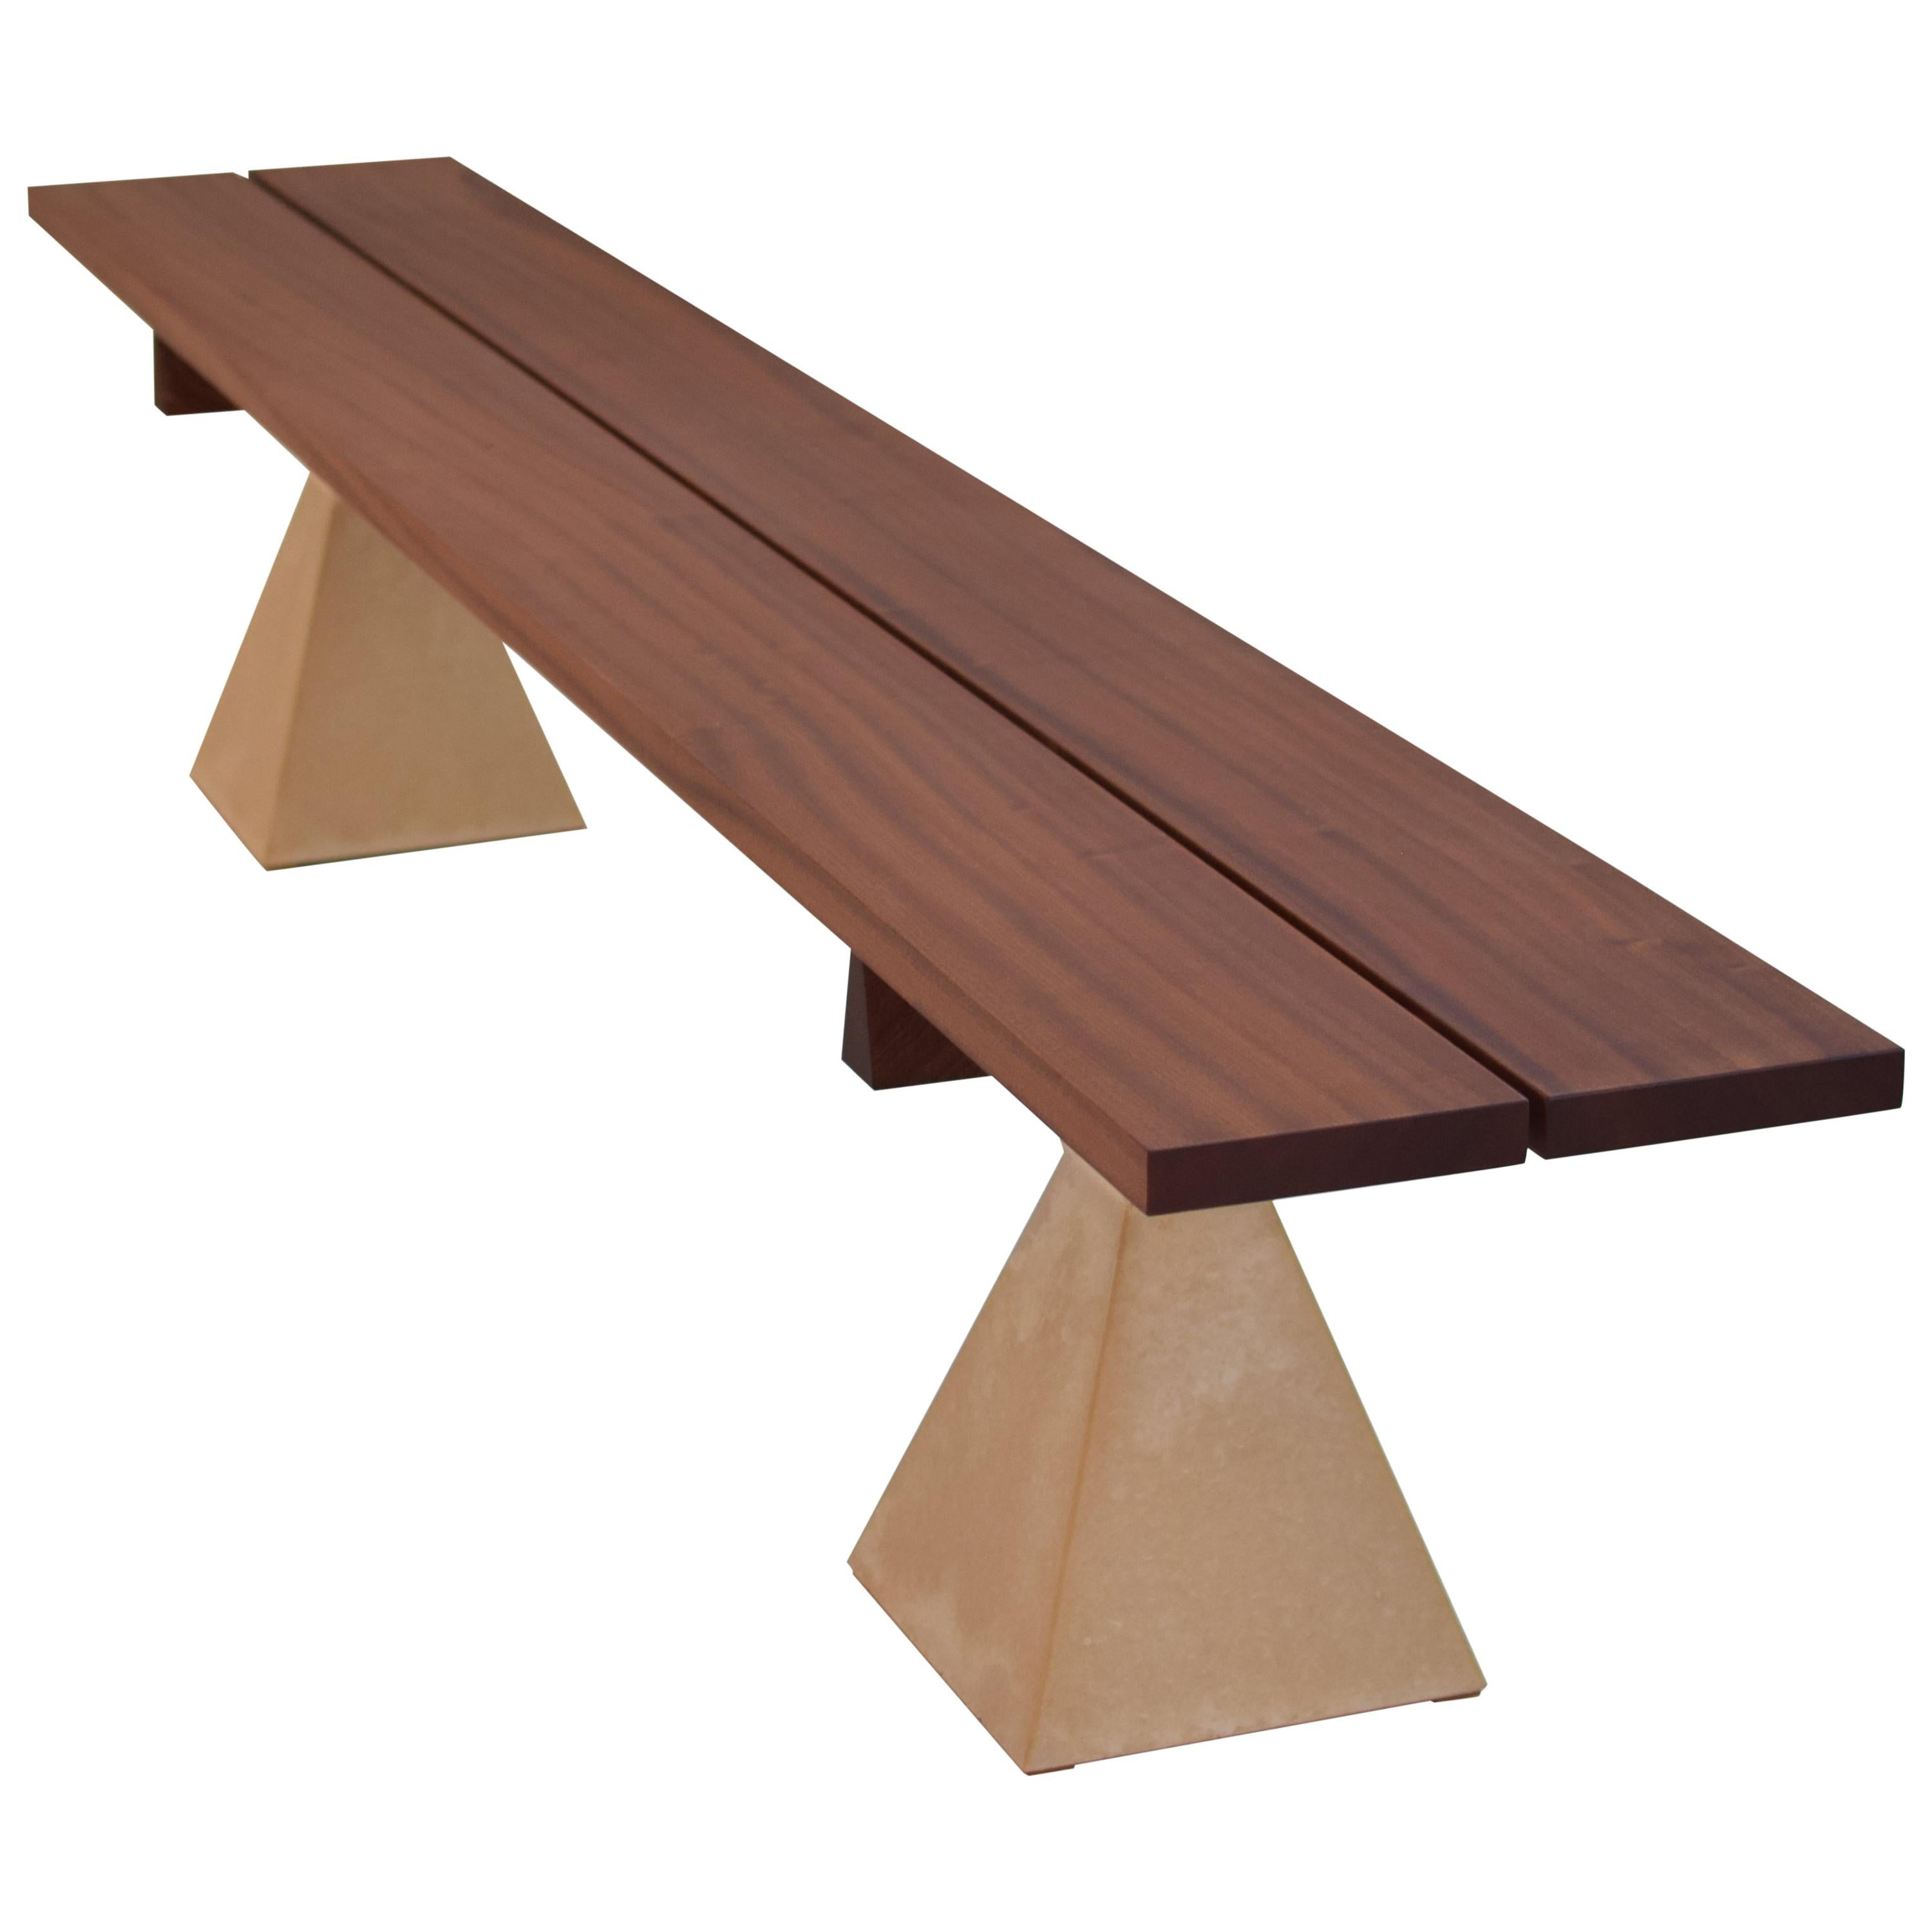 Wood Bench with Concrete Base